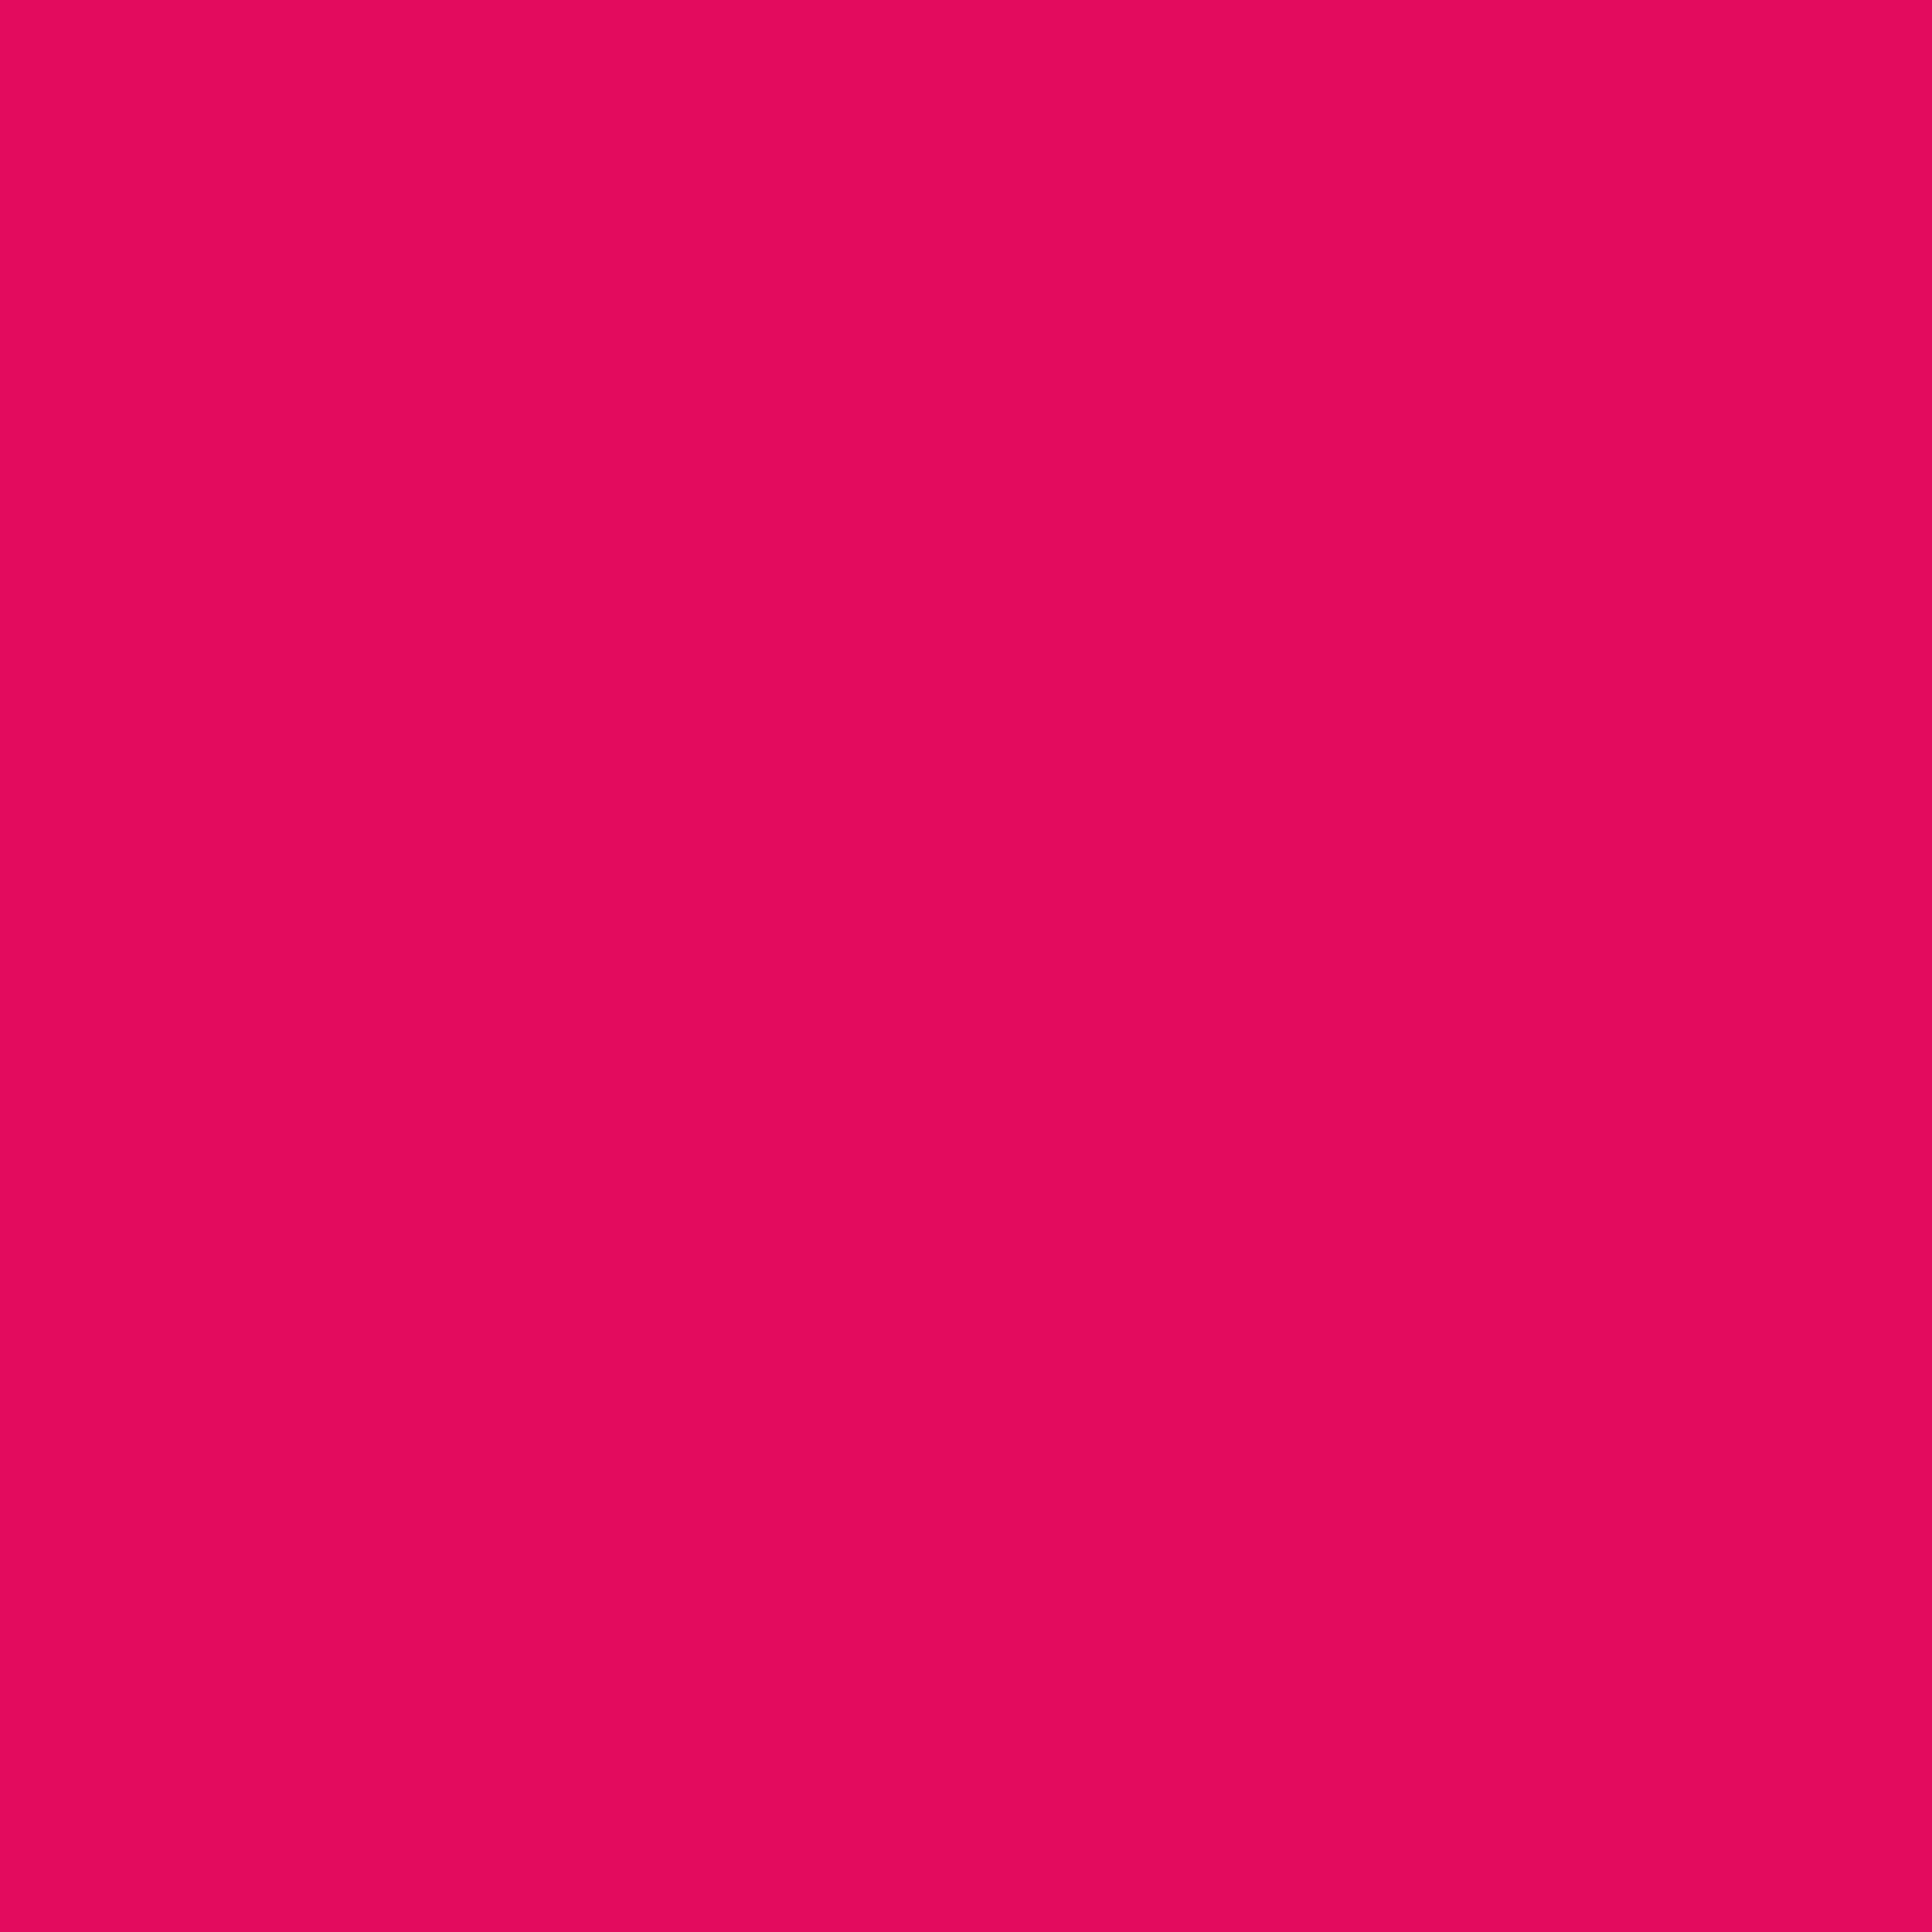 2048x2048 Raspberry Solid Color Background